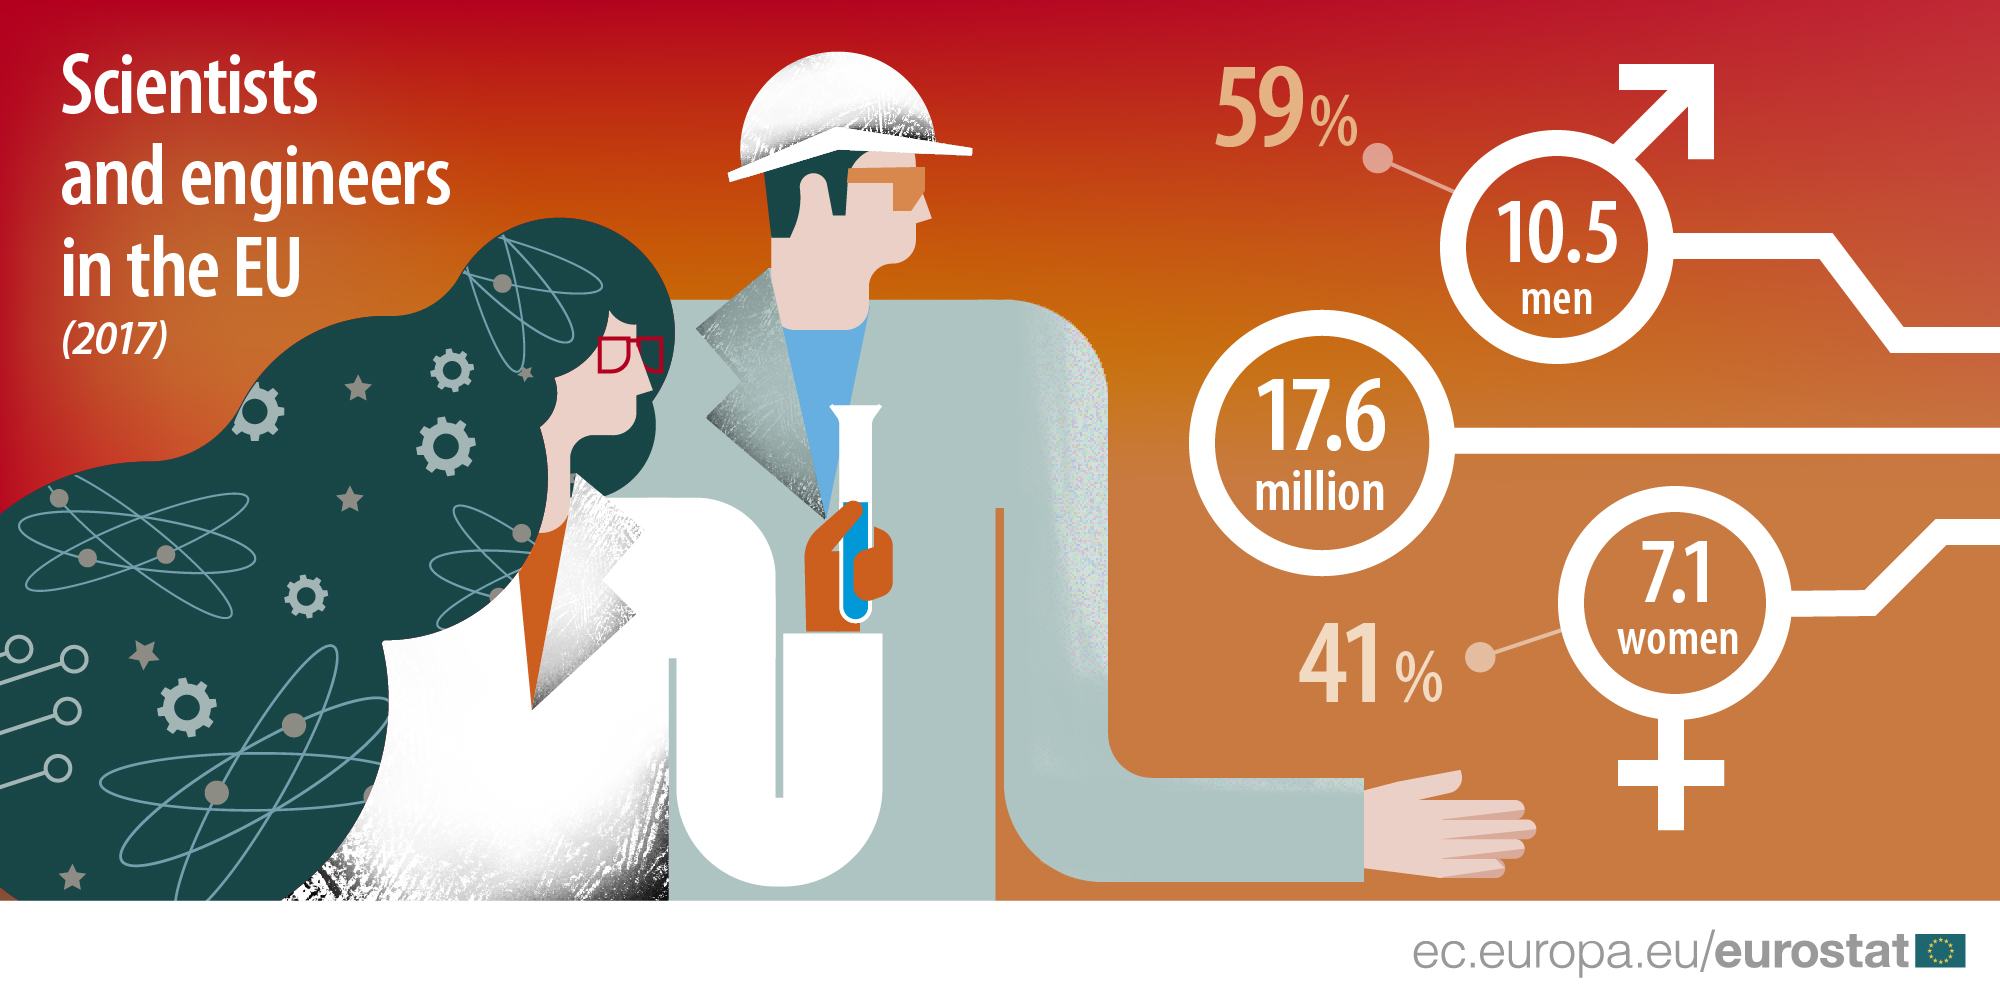 Scientists and engineers in the EU - infographic